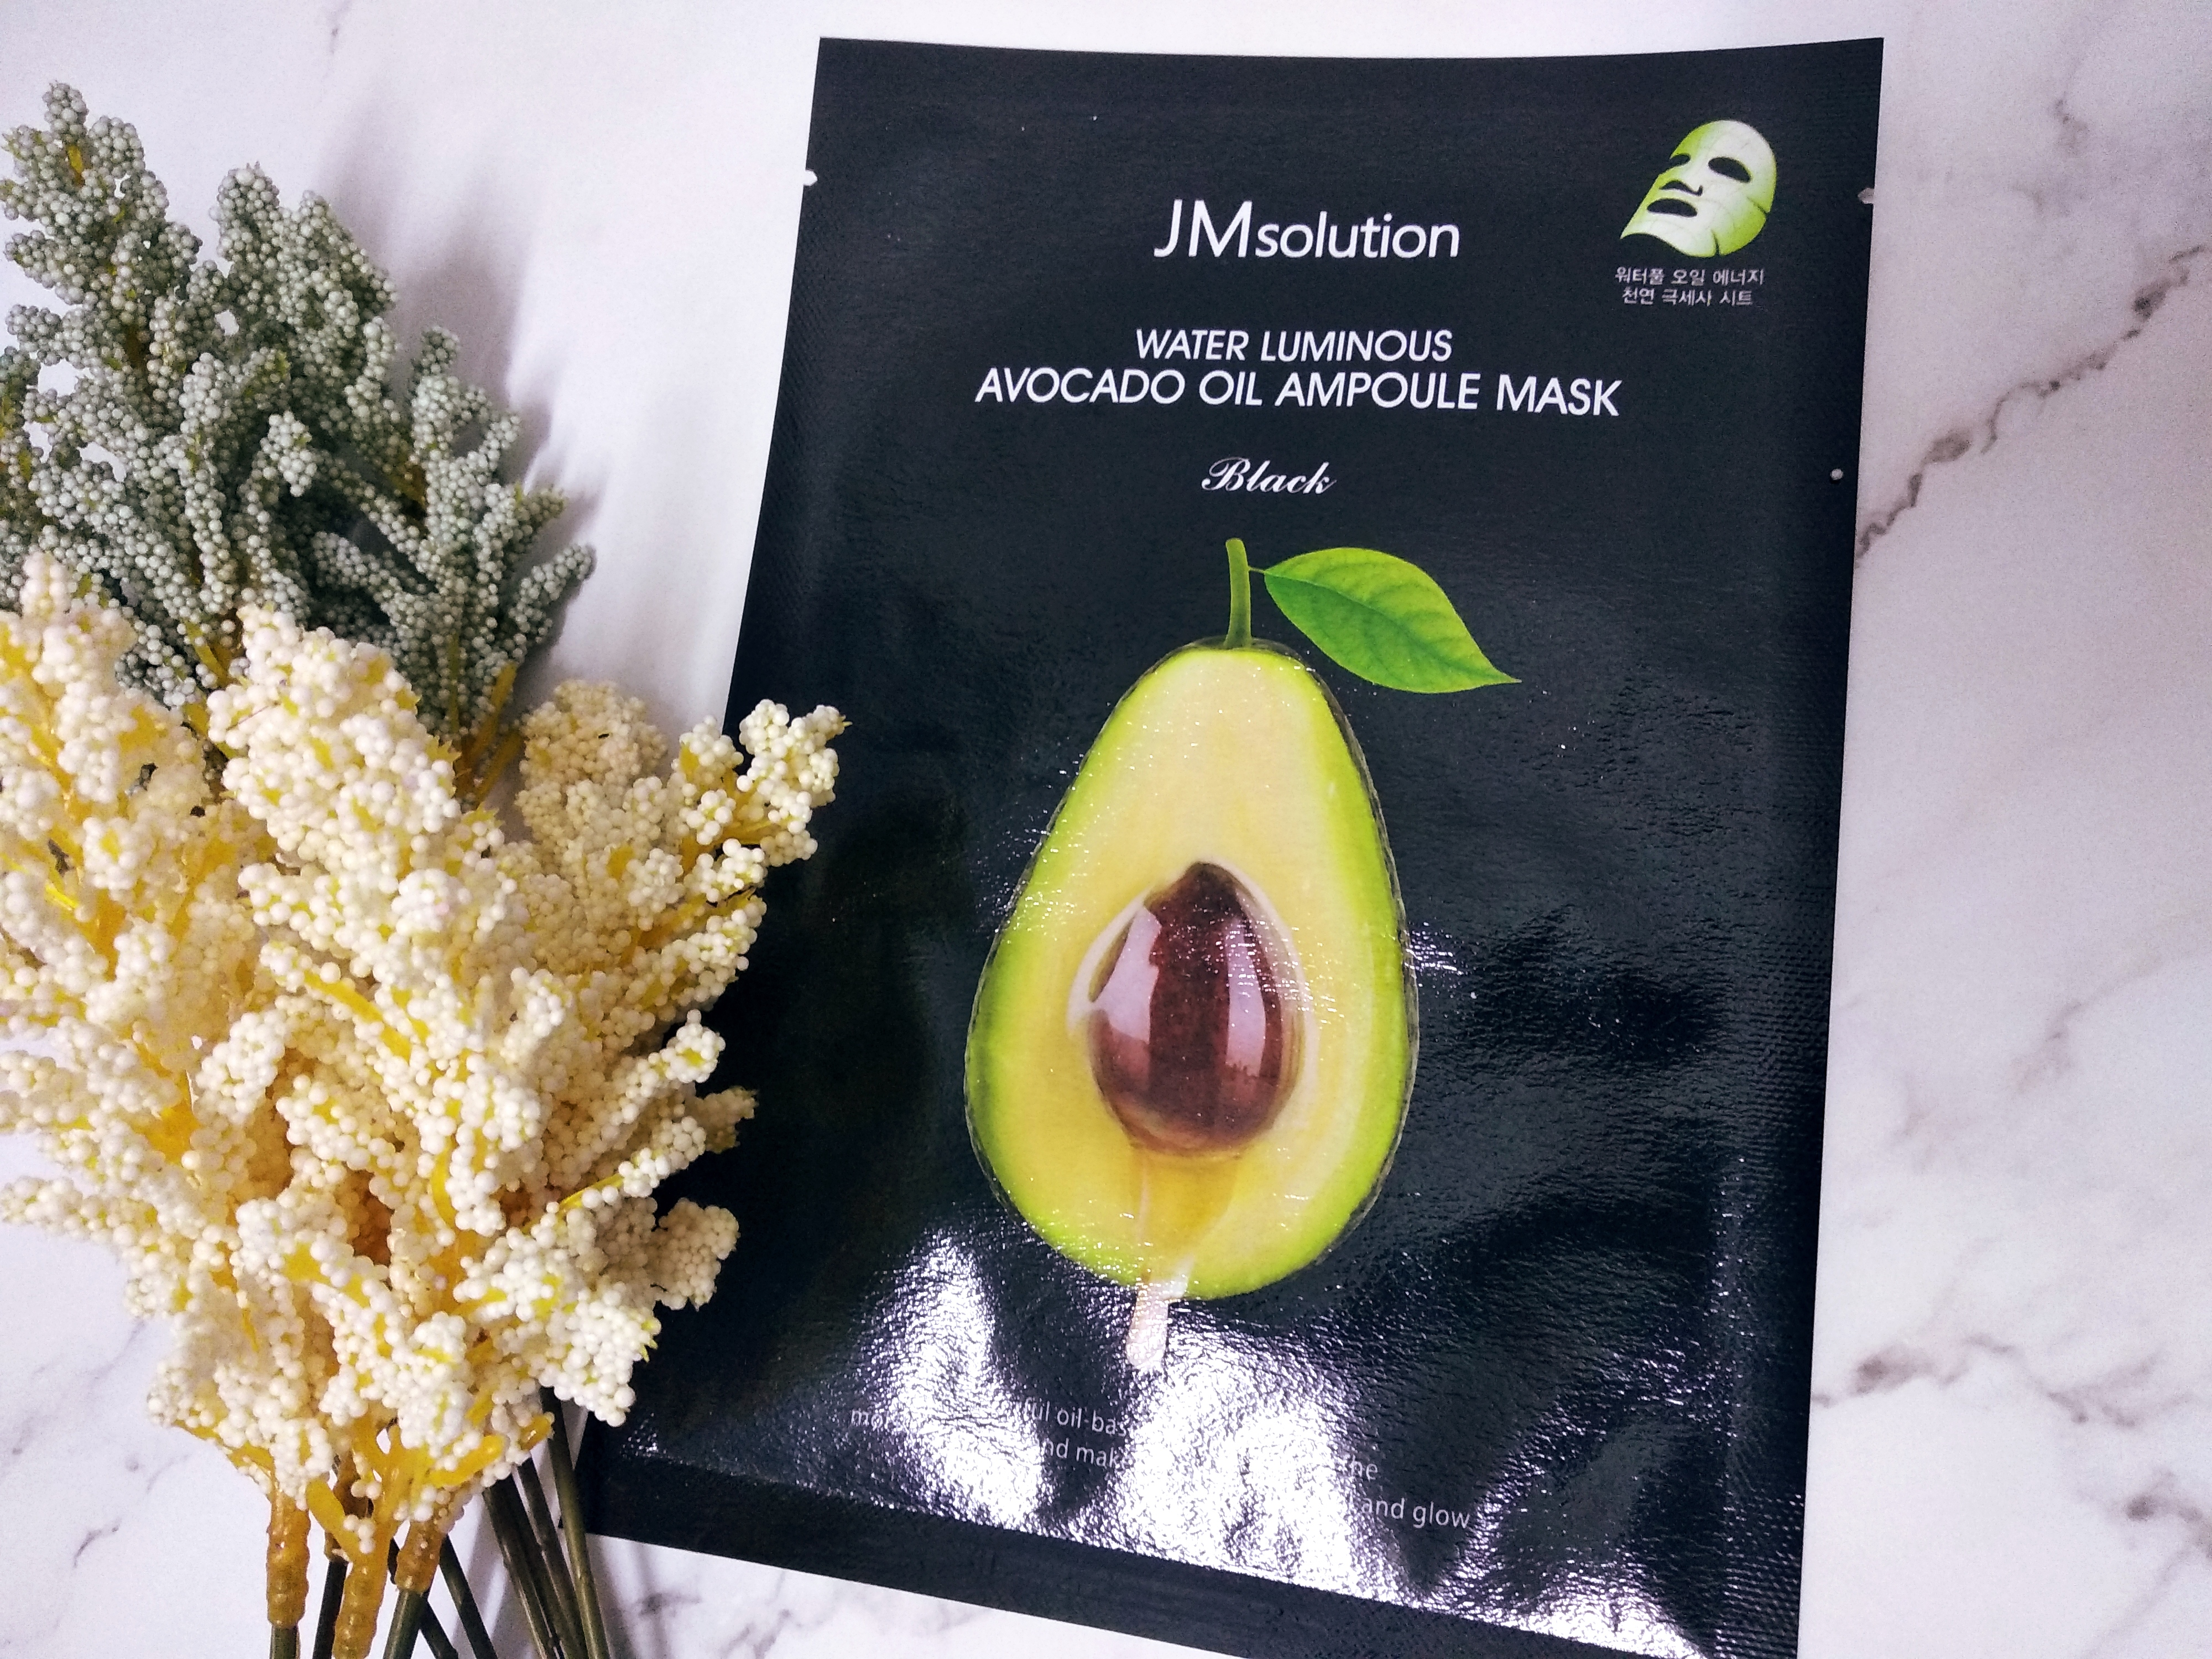 REVIEW | JM Solution Water Luminous Avocado Oil Ampoule Mask